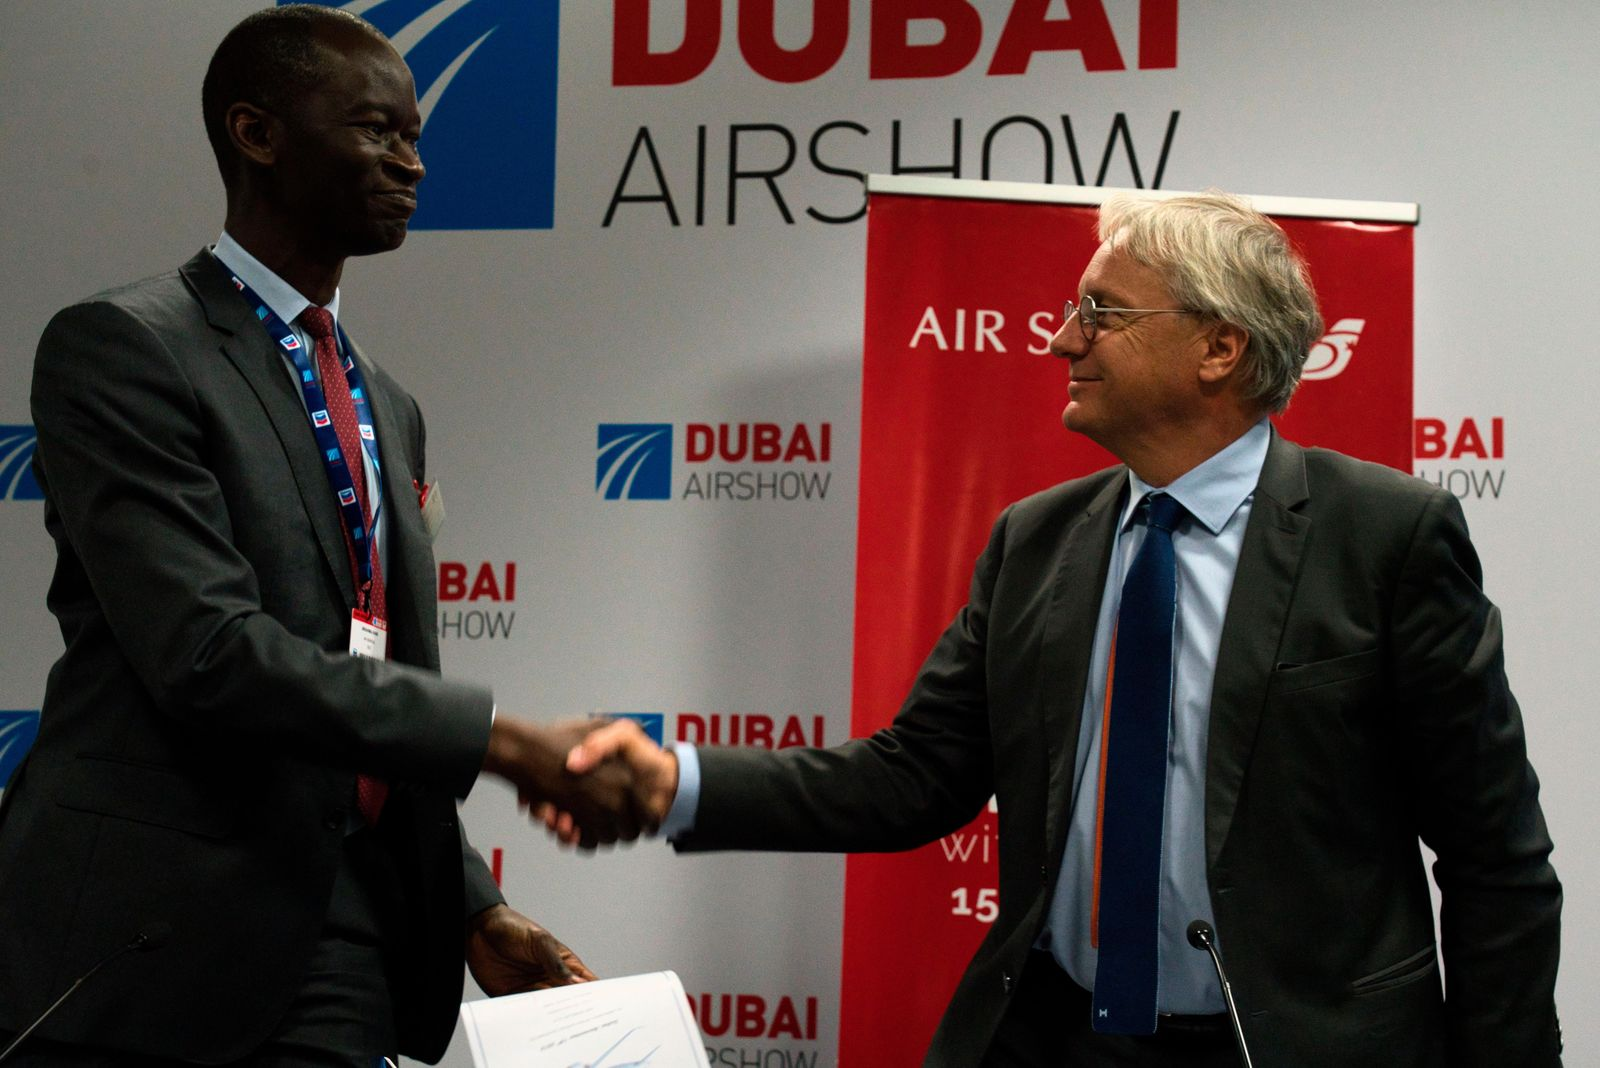 Air Senegal CEO Ibrahima Kane, left, shakes hands with Airbus' chief commercial officer Christian Scherer at a news conference at the Dubai Airshow in Dubai, United Arab Emirates, Tuesday, Nov. 19, 2019.. (AP Photo/Jon Gambrell)